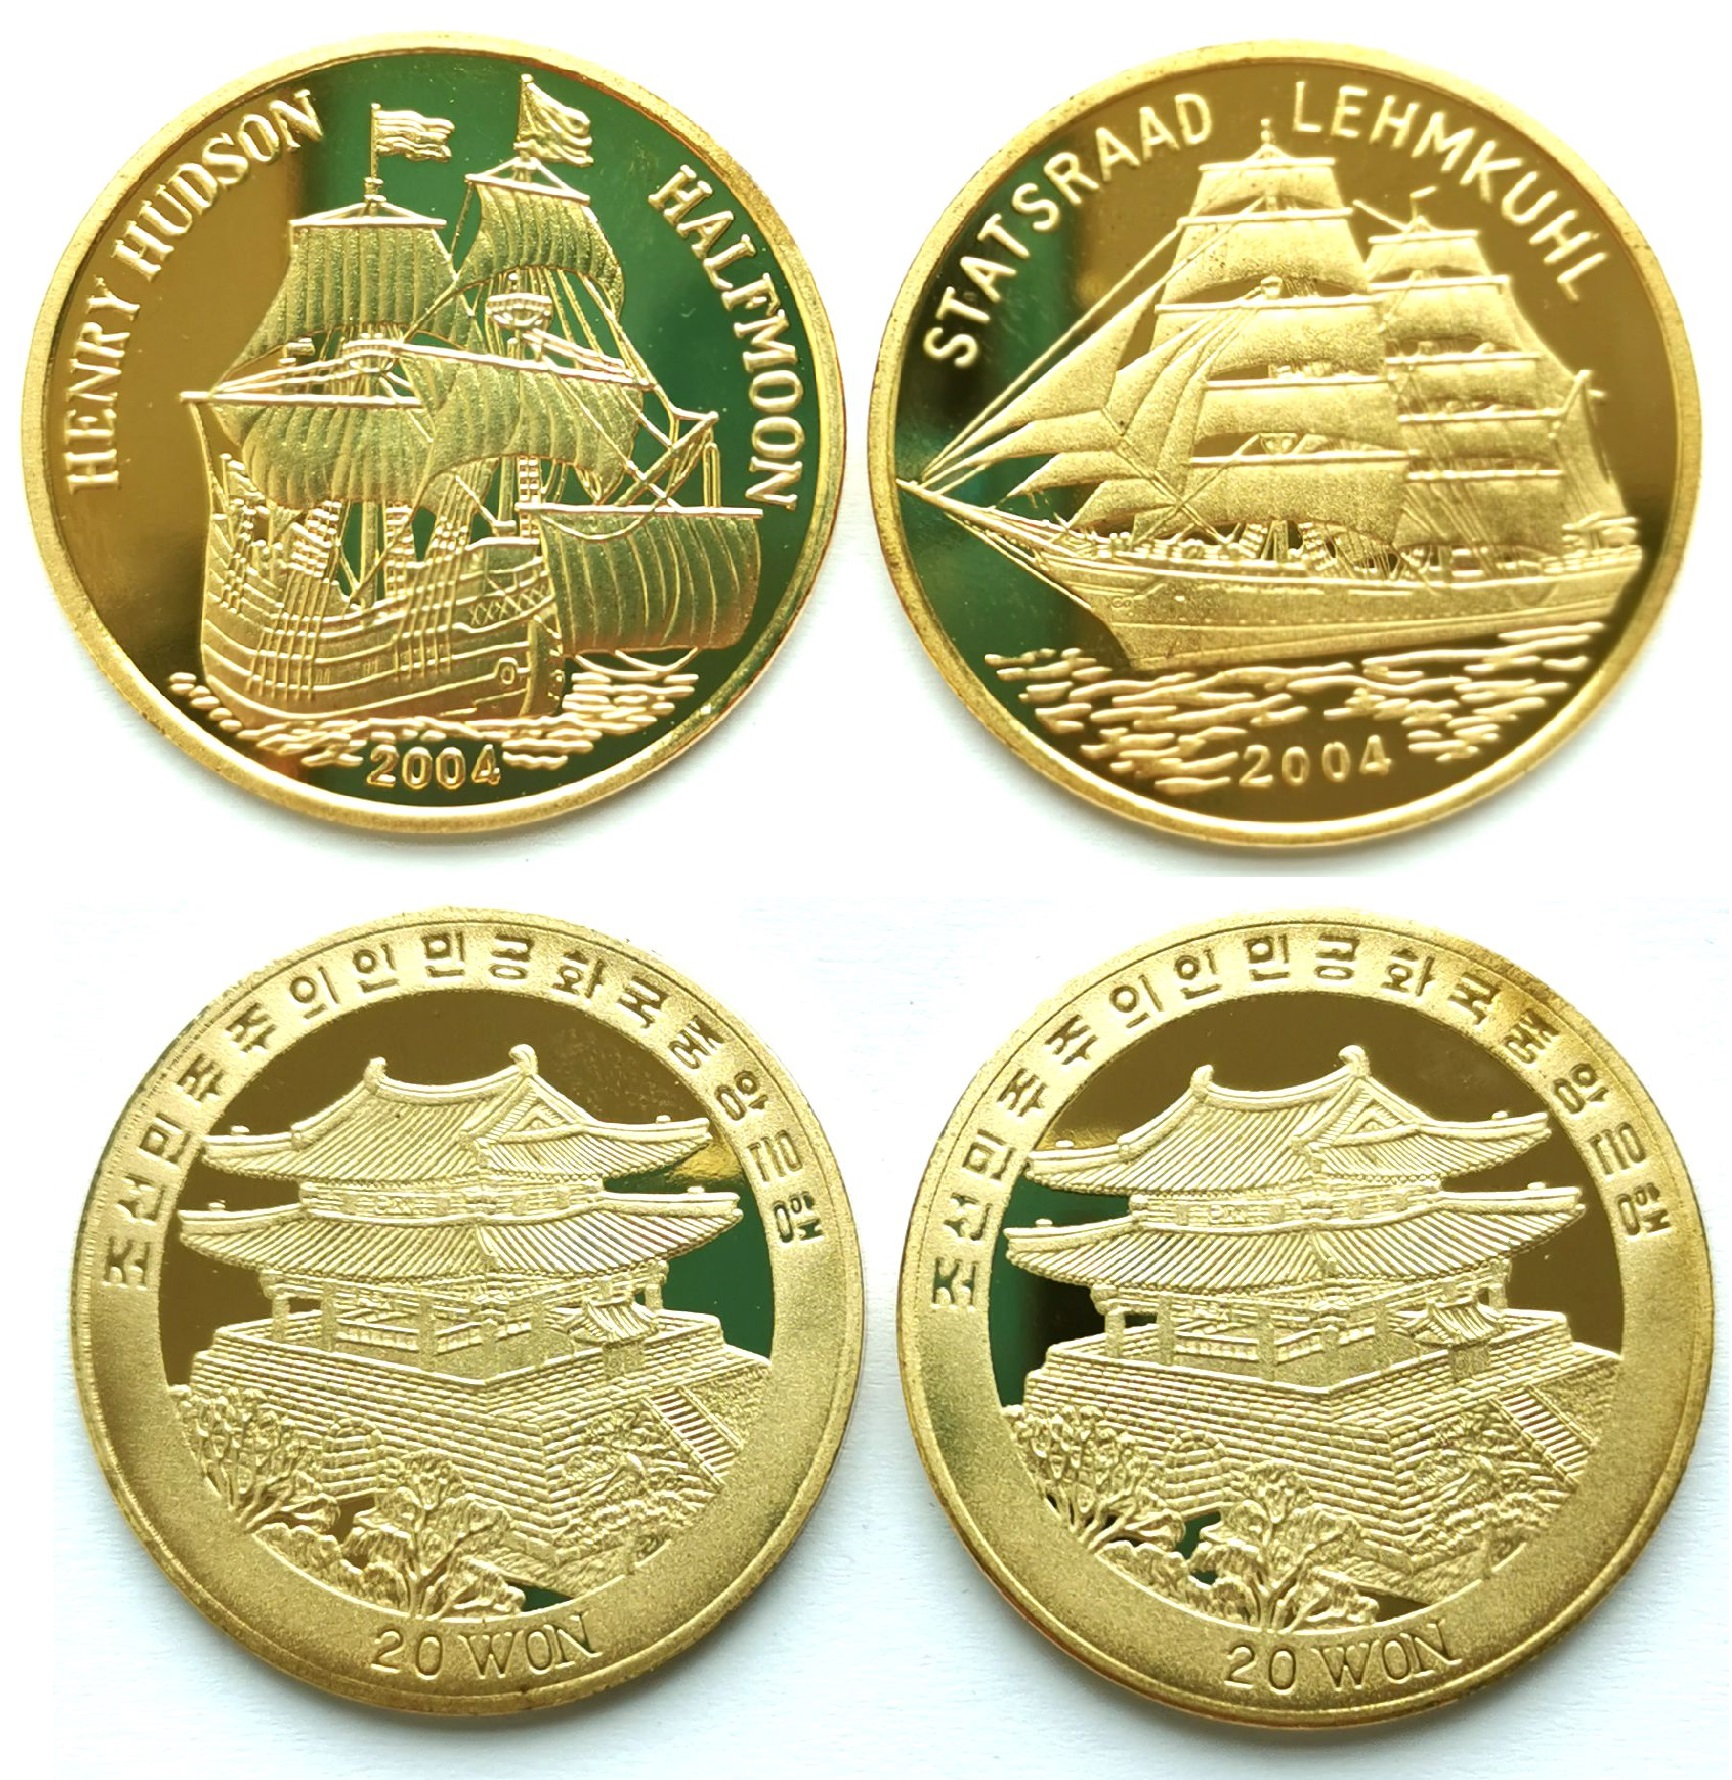 L3278, Korea Ancient Warships 2 Pcs Commemorative Coins, 2004